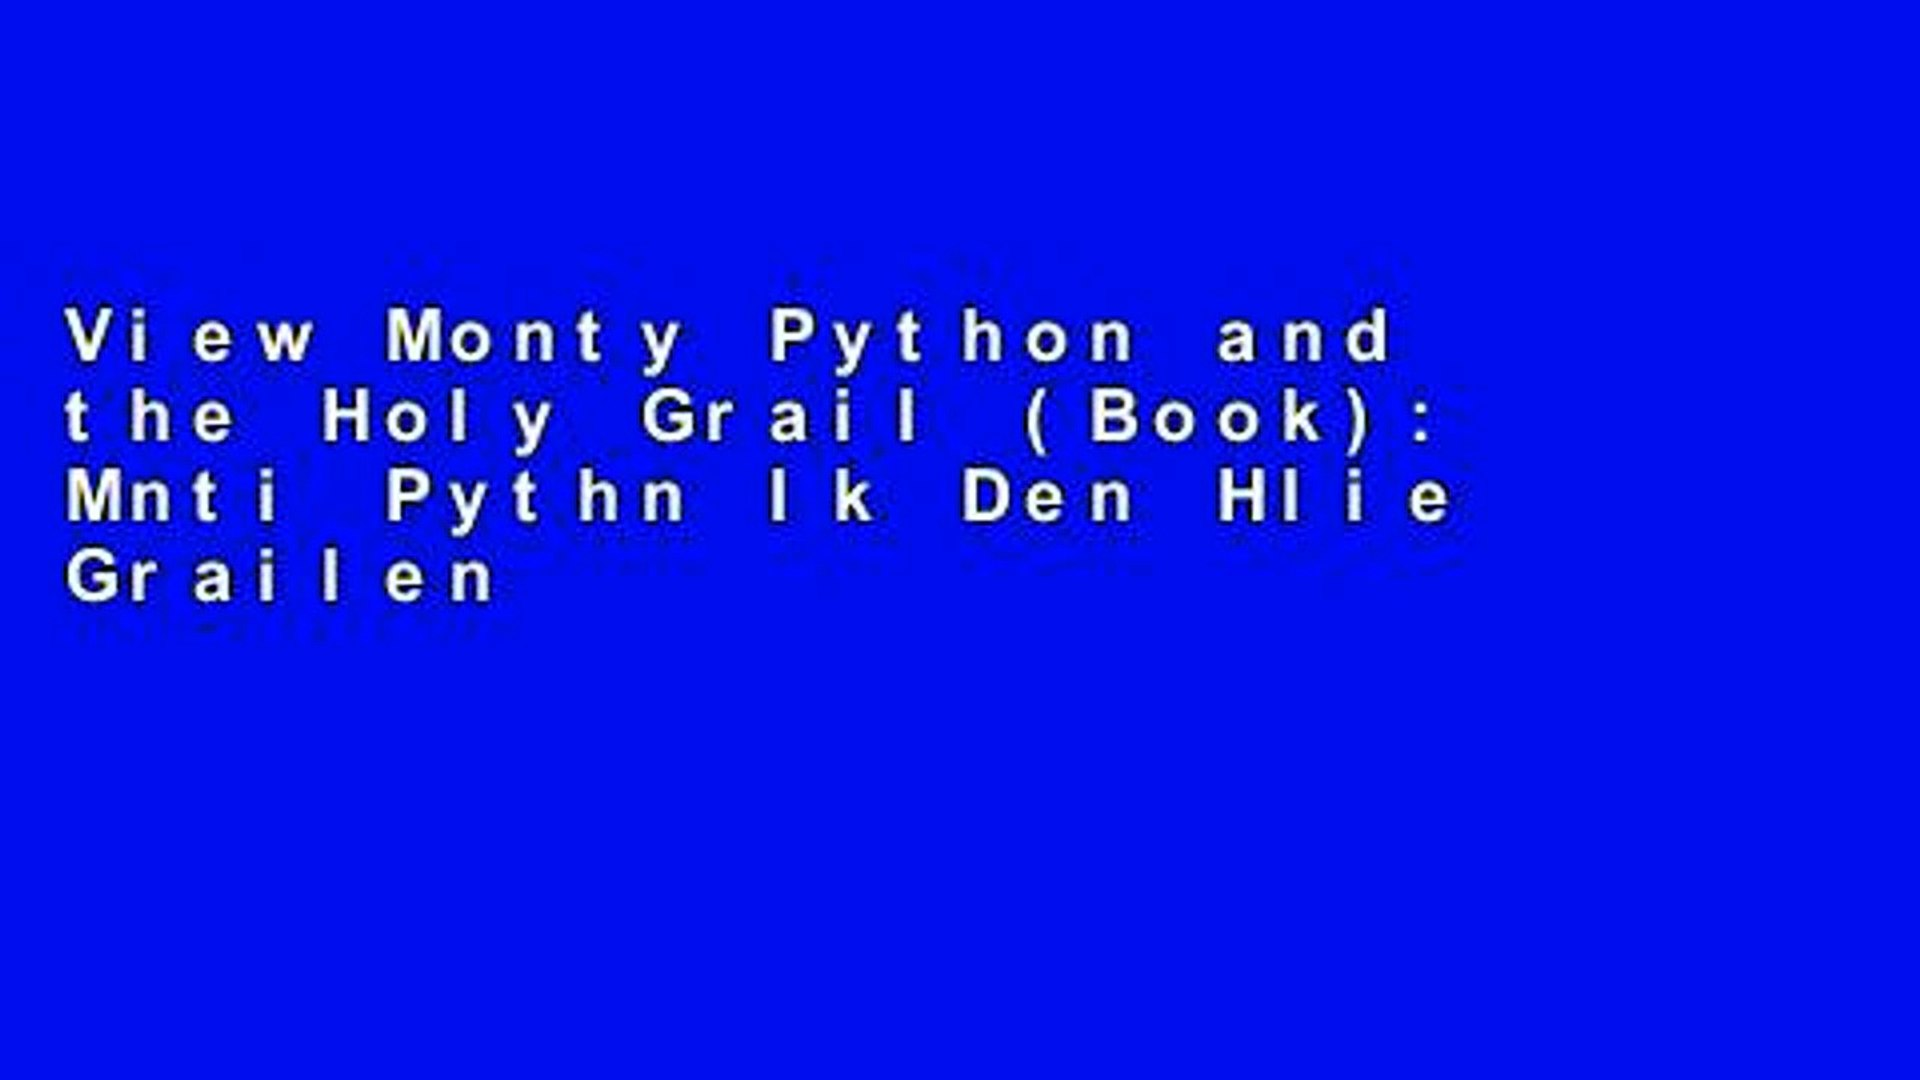 View Monty Python And The Holy Grail Book Mnti Pythn Ik Den